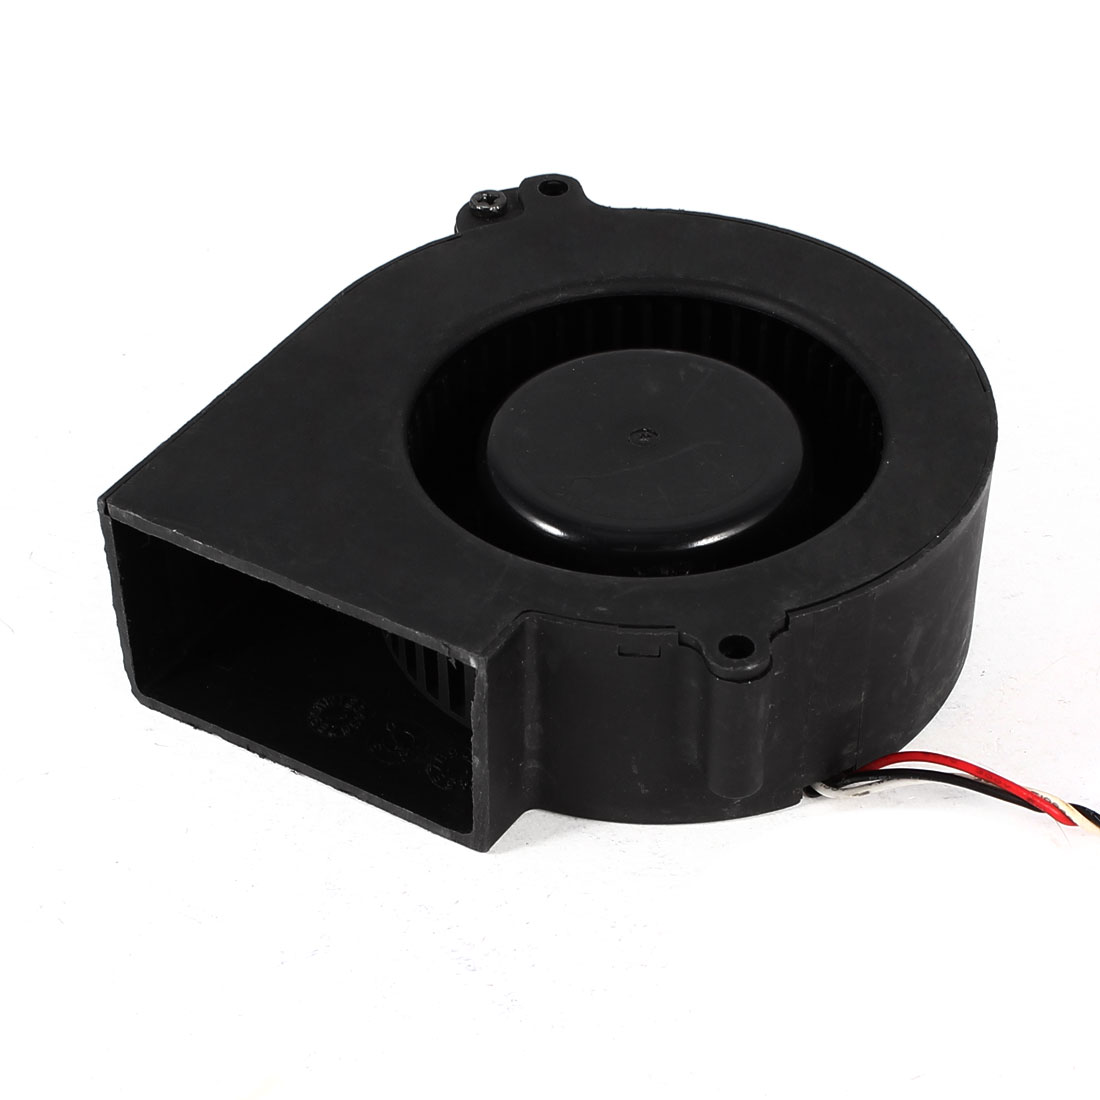 DC Brushless 3 Wires Cooling Blower Fan Cooler 9733 97mmx33mm Black DC 12V 2.6A